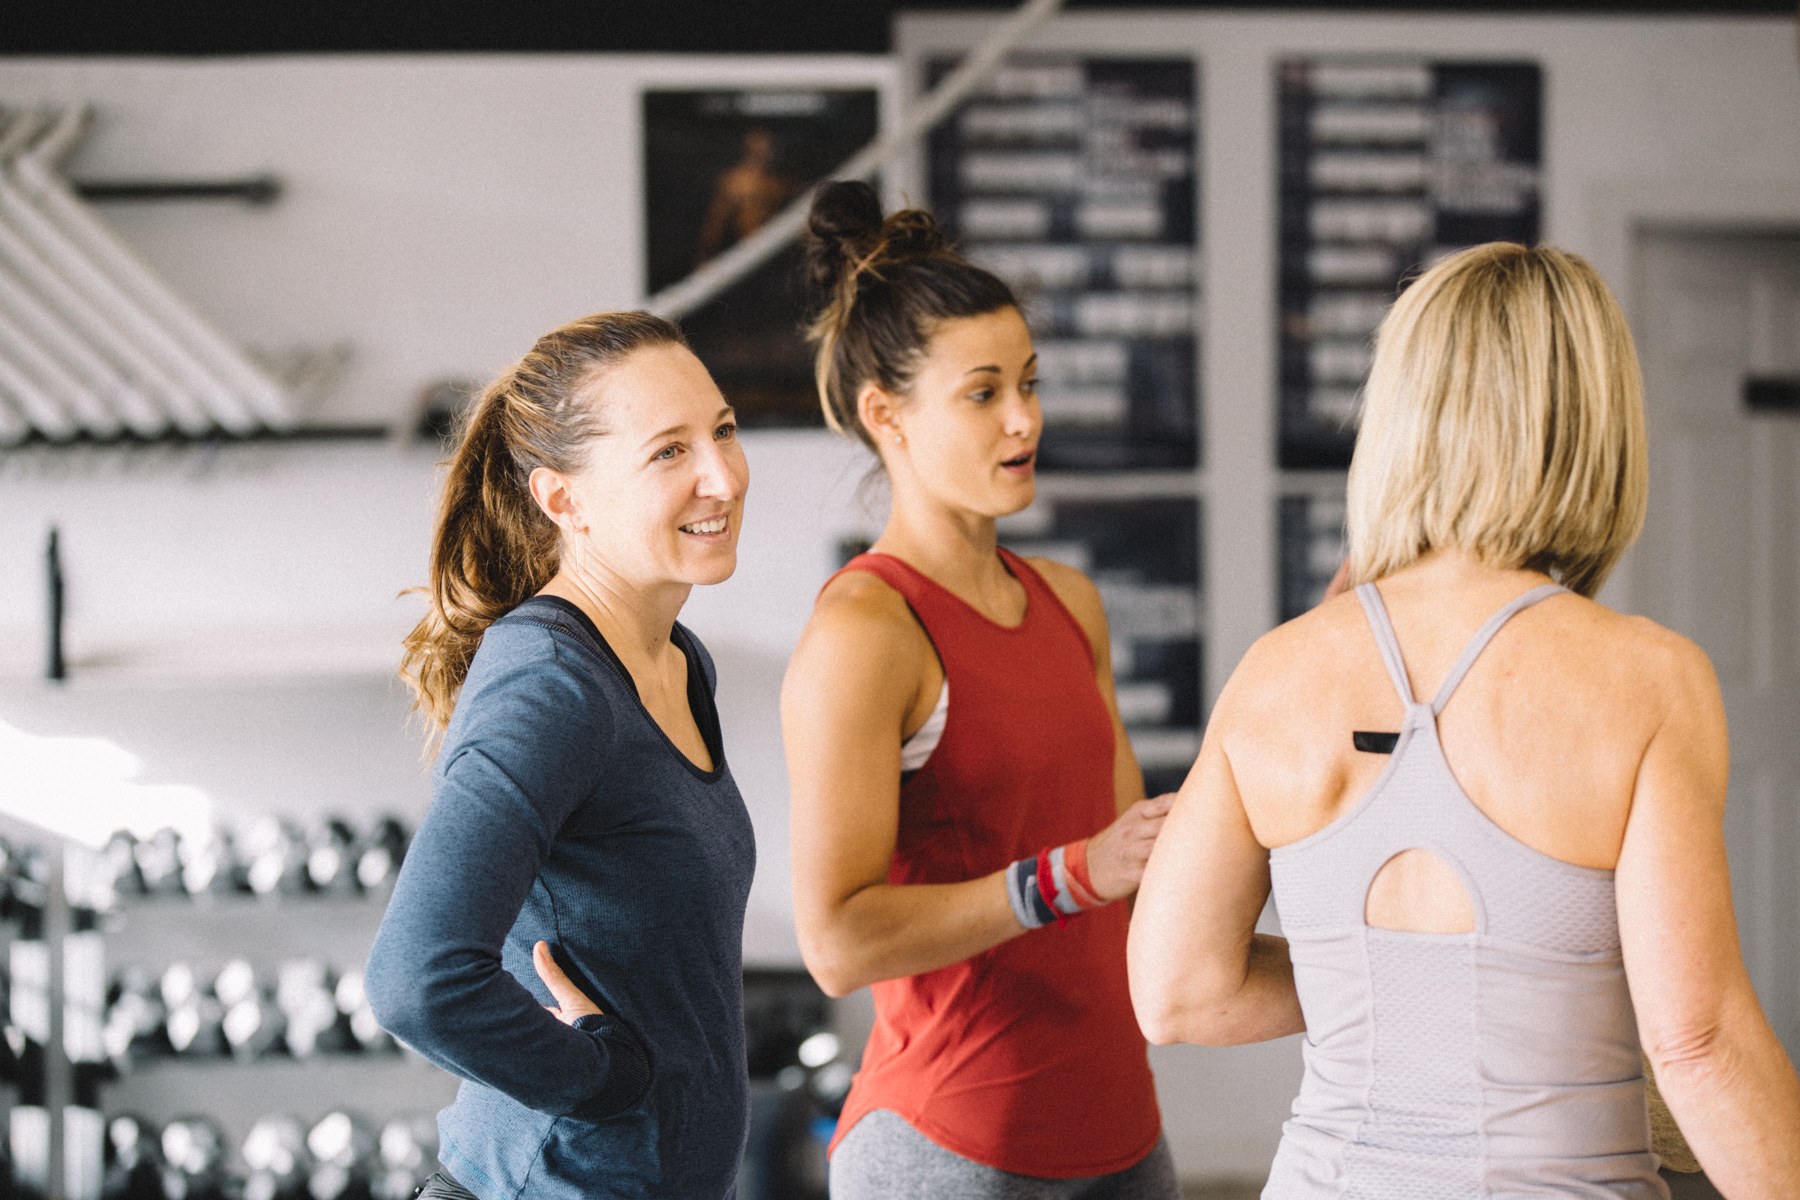 Join an amazing community - Our gym community not only includes some of the best trainers, it also includes some of the best people around. We believe fitness can change your life, but pales in comparison to the growth you'll feel in our community.Learn more ➝